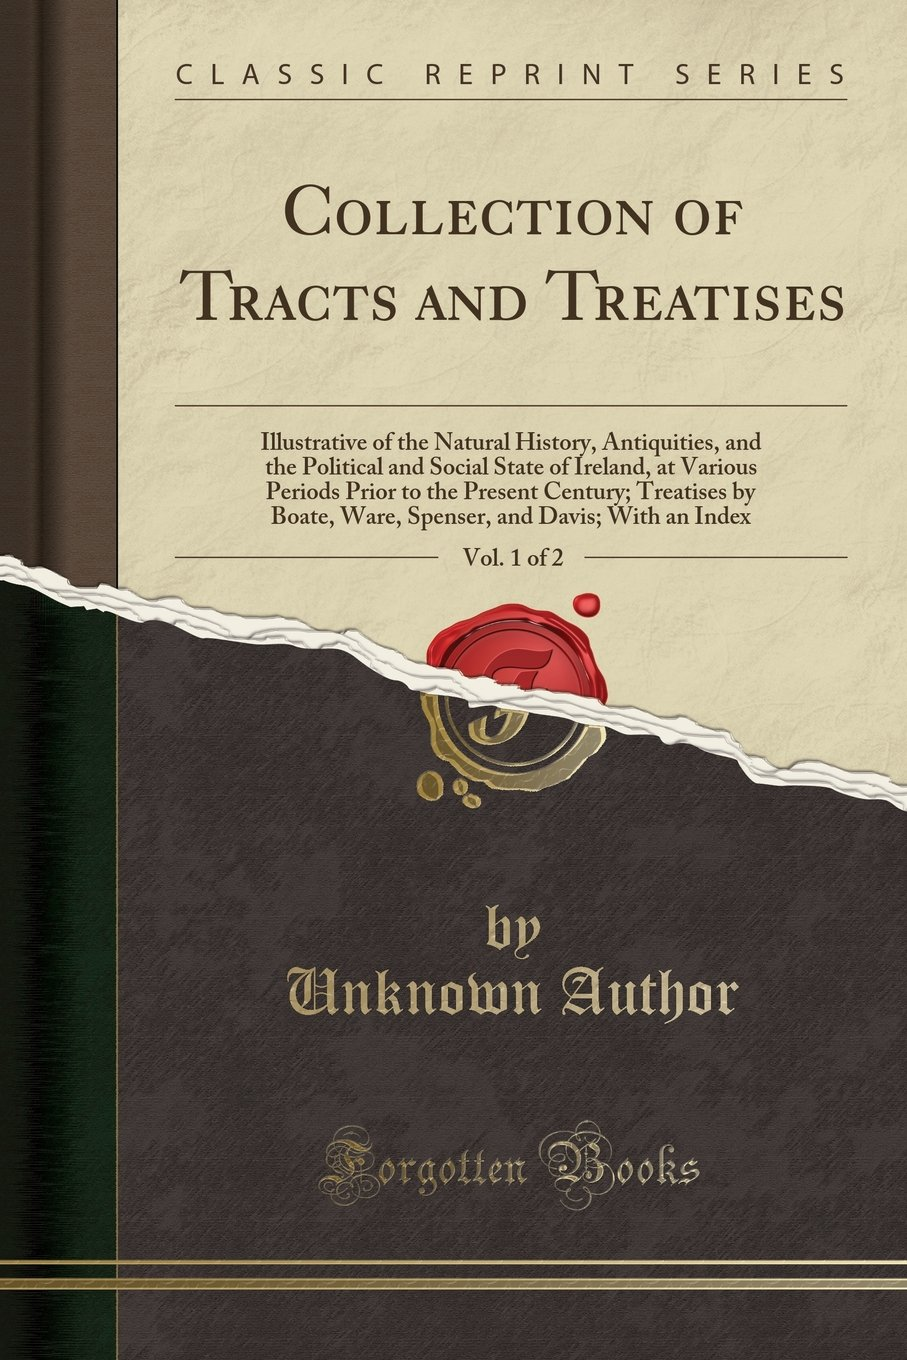 Download Collection of Tracts and Treatises, Vol. 1 of 2: Illustrative of the Natural History, Antiquities, and the Political and Social State of Ireland, at ... Ware, Spenser, and Davis; With an Index pdf